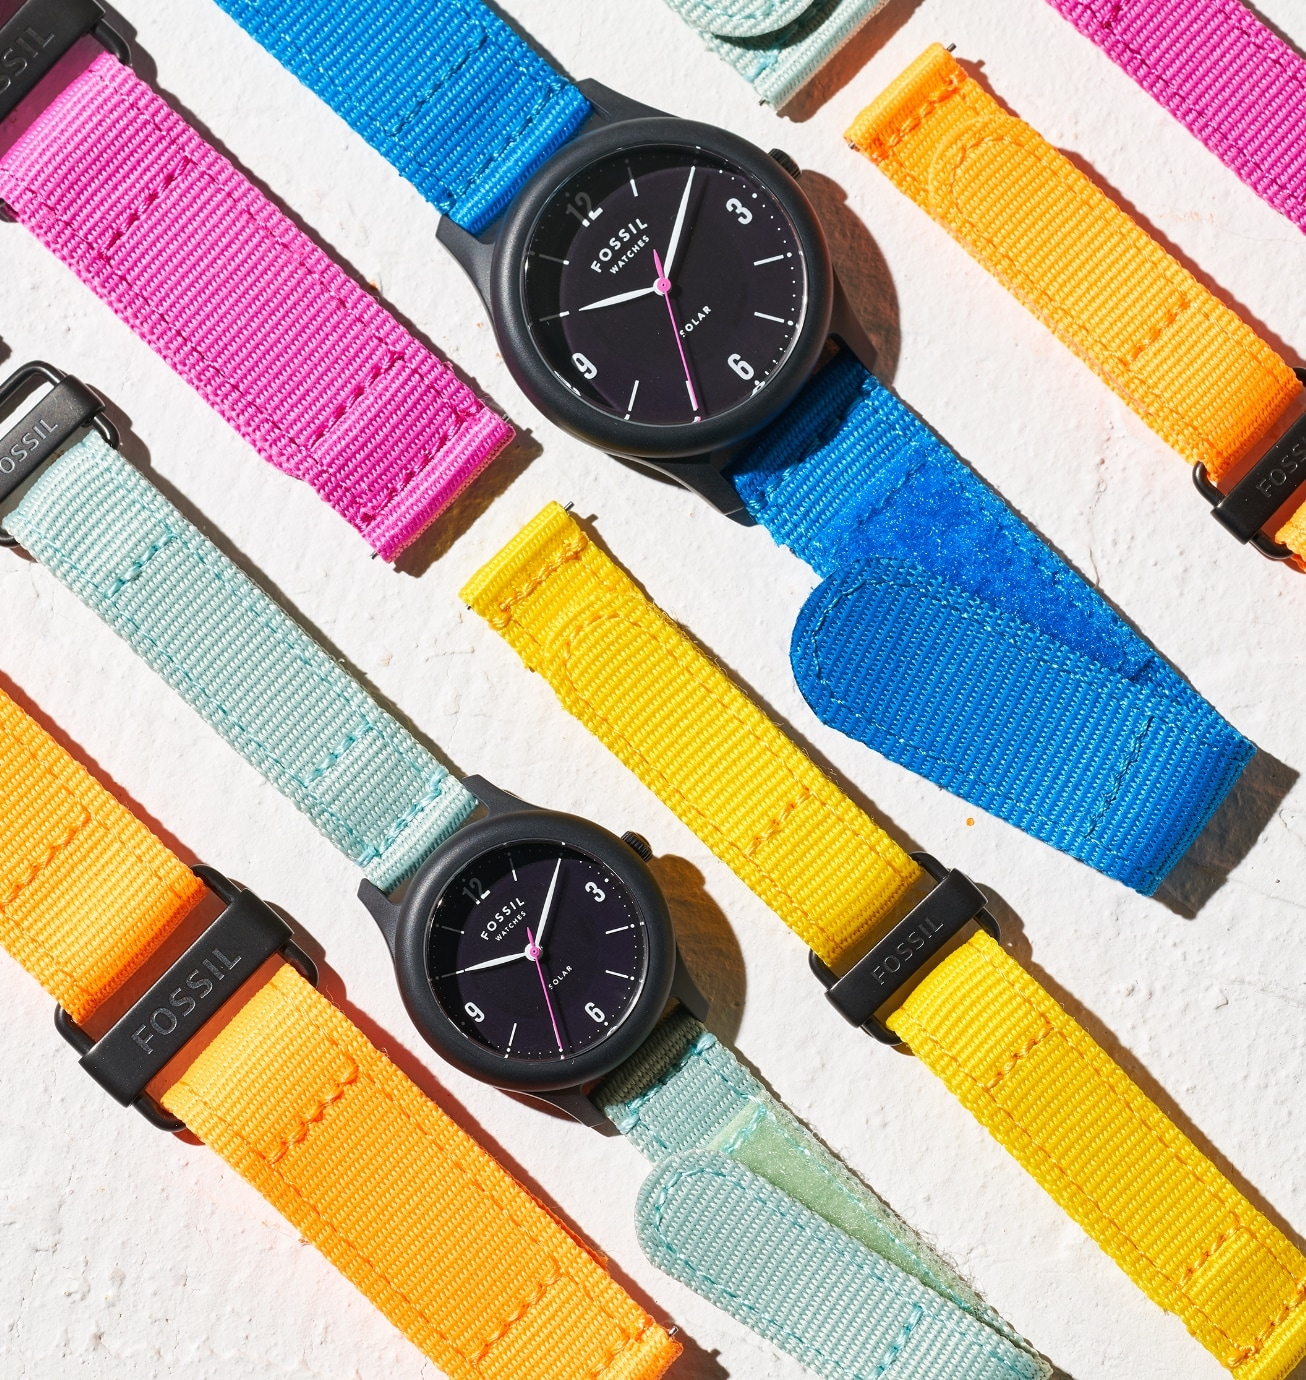 Limited-Edition Solar Watches beside interchangeable straps.